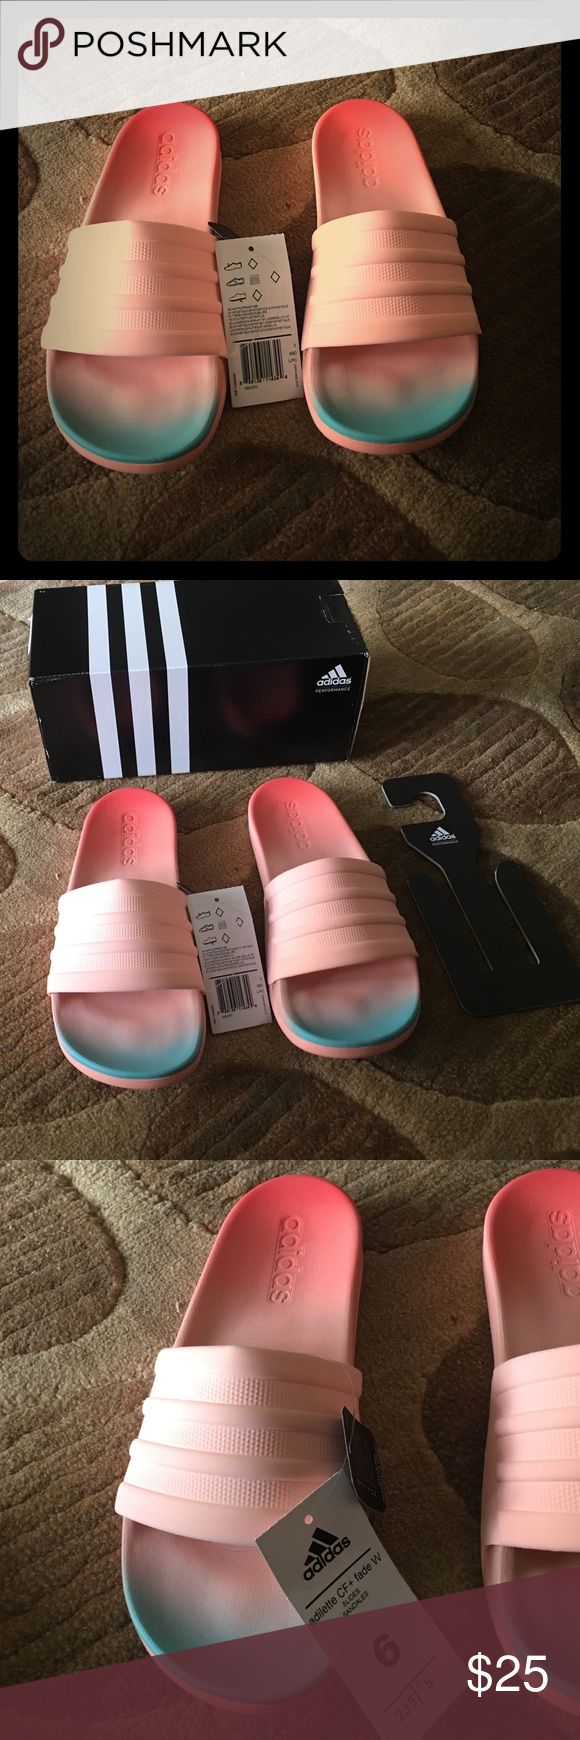 Color Slides Of New York City April 1979: 1000+ Ideas About Adidas Sandals On Pinterest